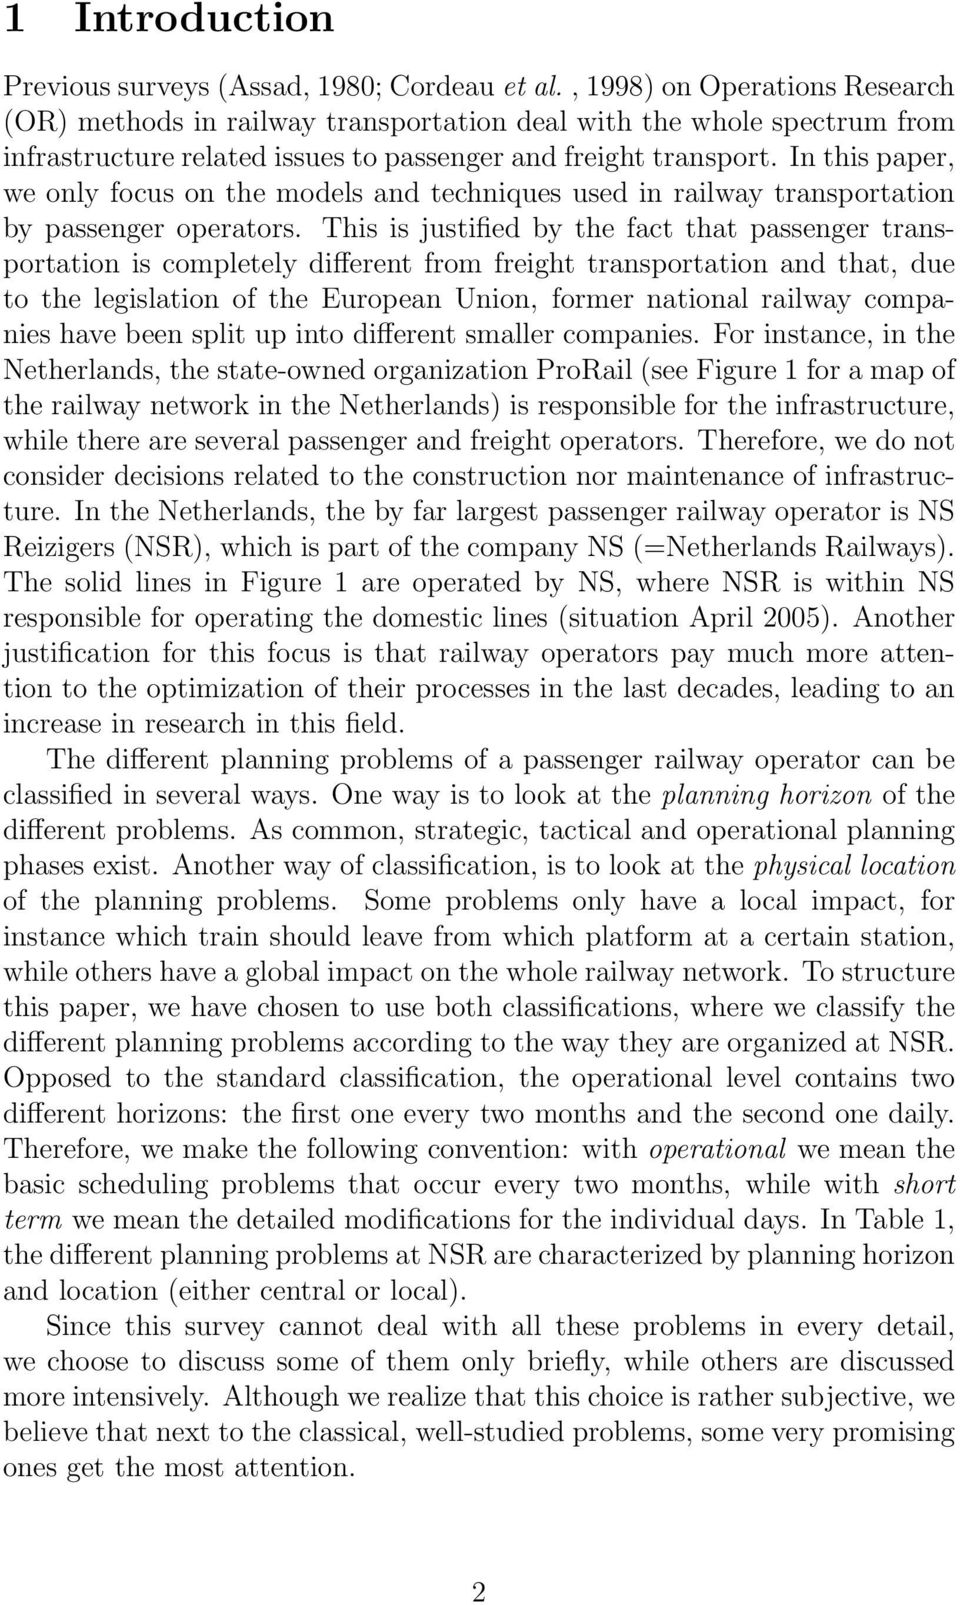 In this paper, we only focus on the models and techniques used in railway transportation by passenger operators.